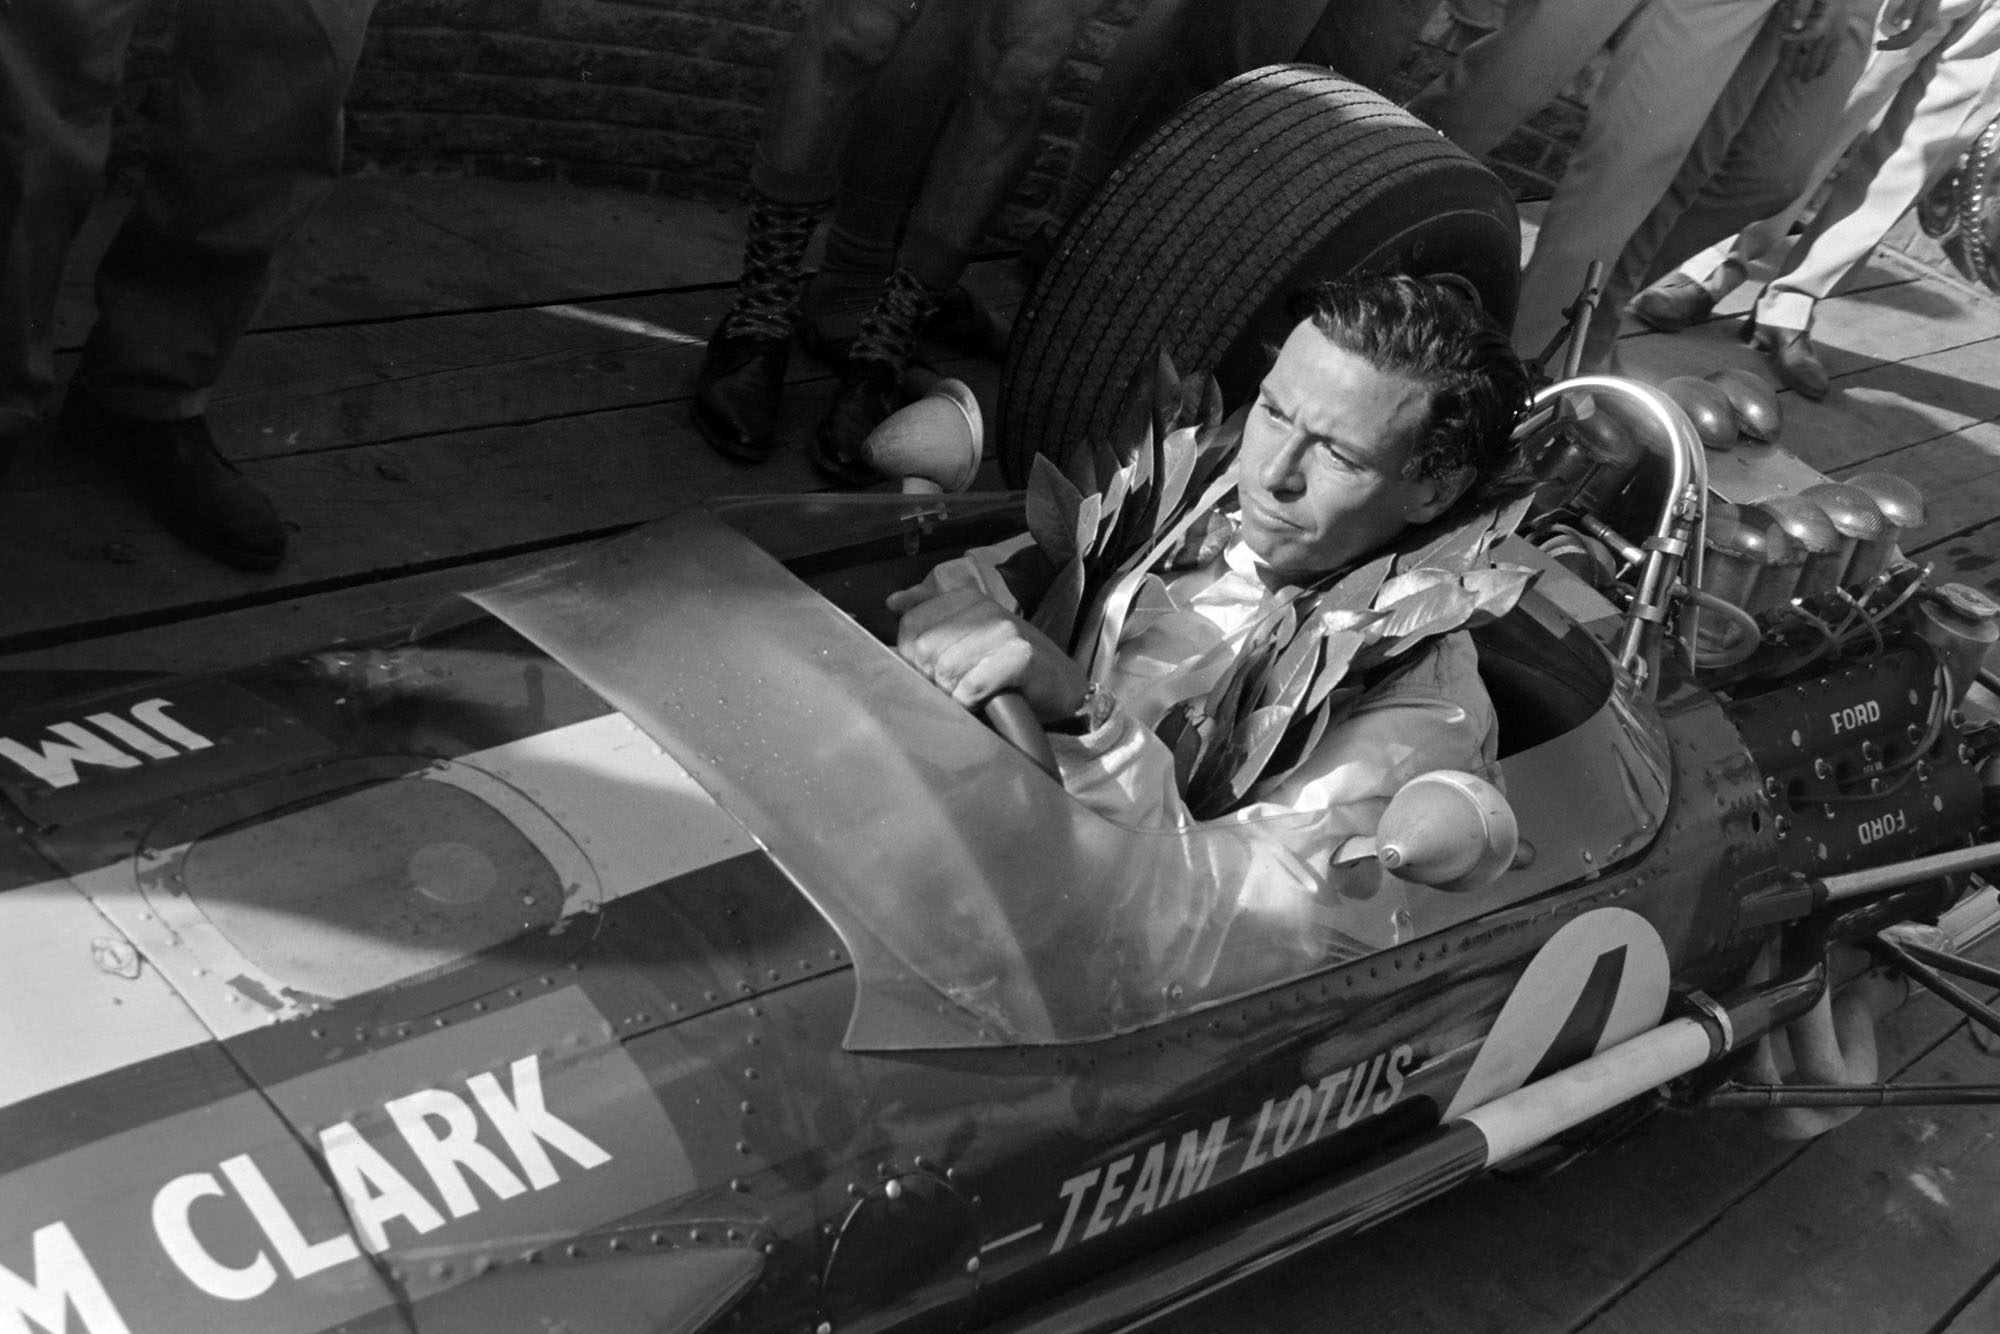 Winner Jim Clark in his Lotus 49 Ford returns to the pits.